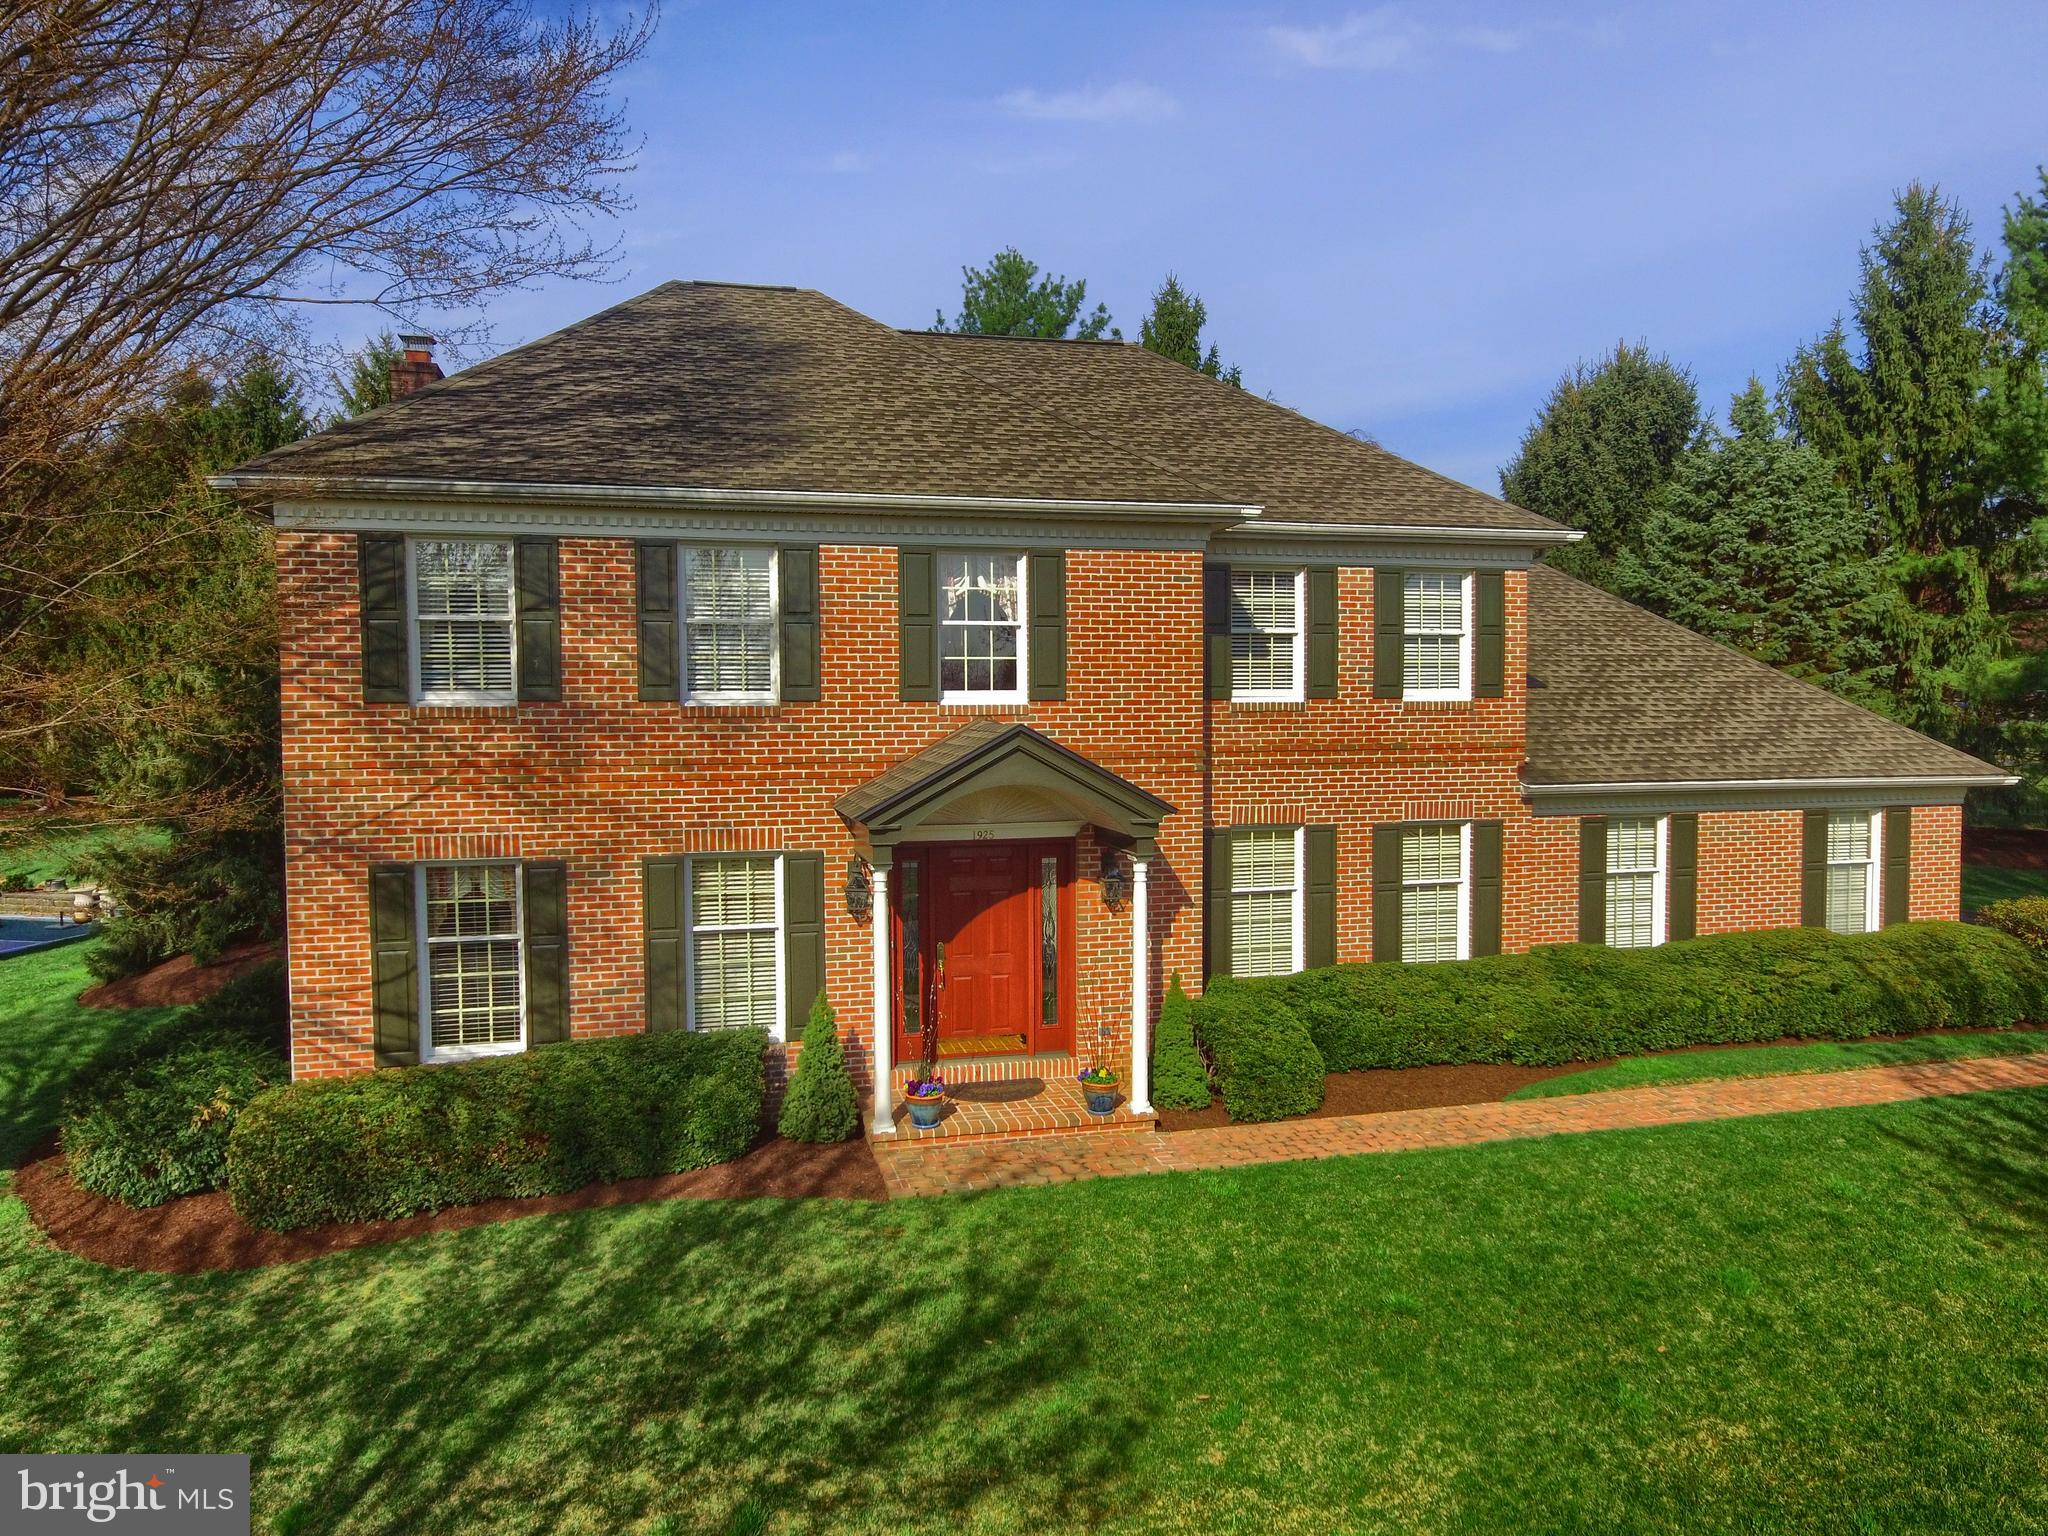 1925 WICKFORD PLACE, WYOMISSING, PA 19610